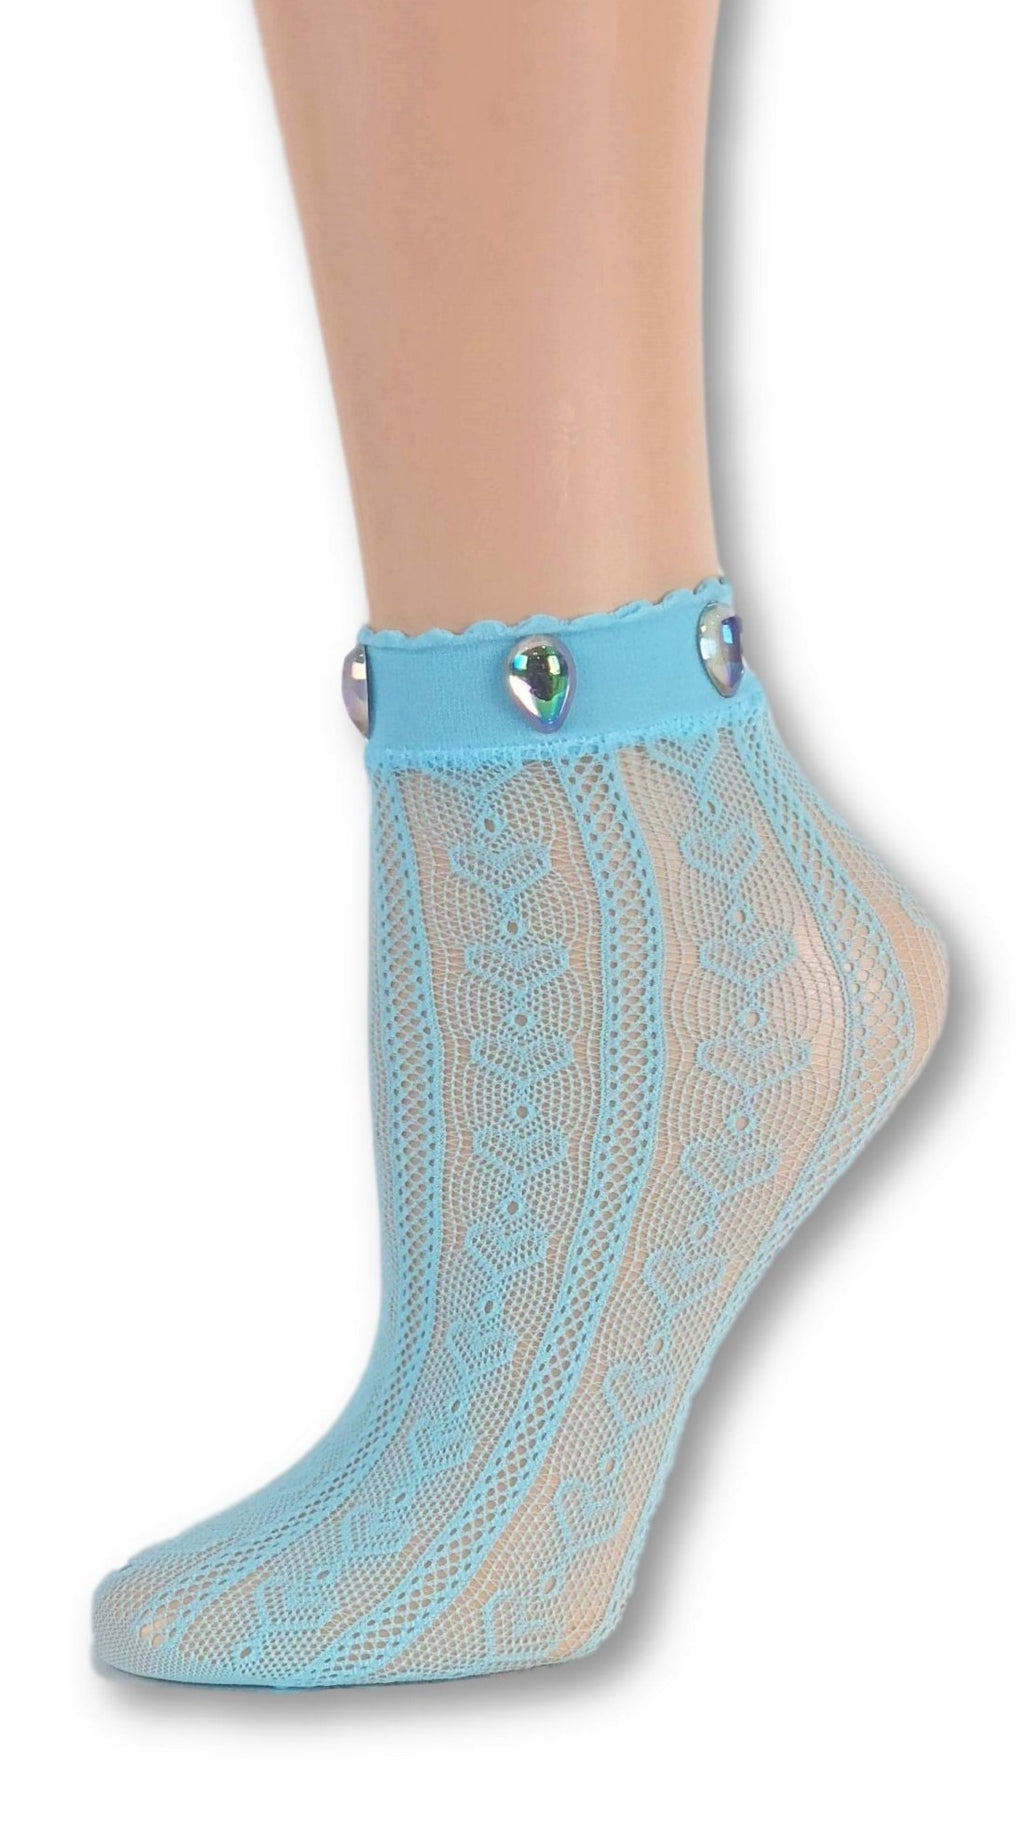 Heart Cool Blue Custom Mesh Socks with beads